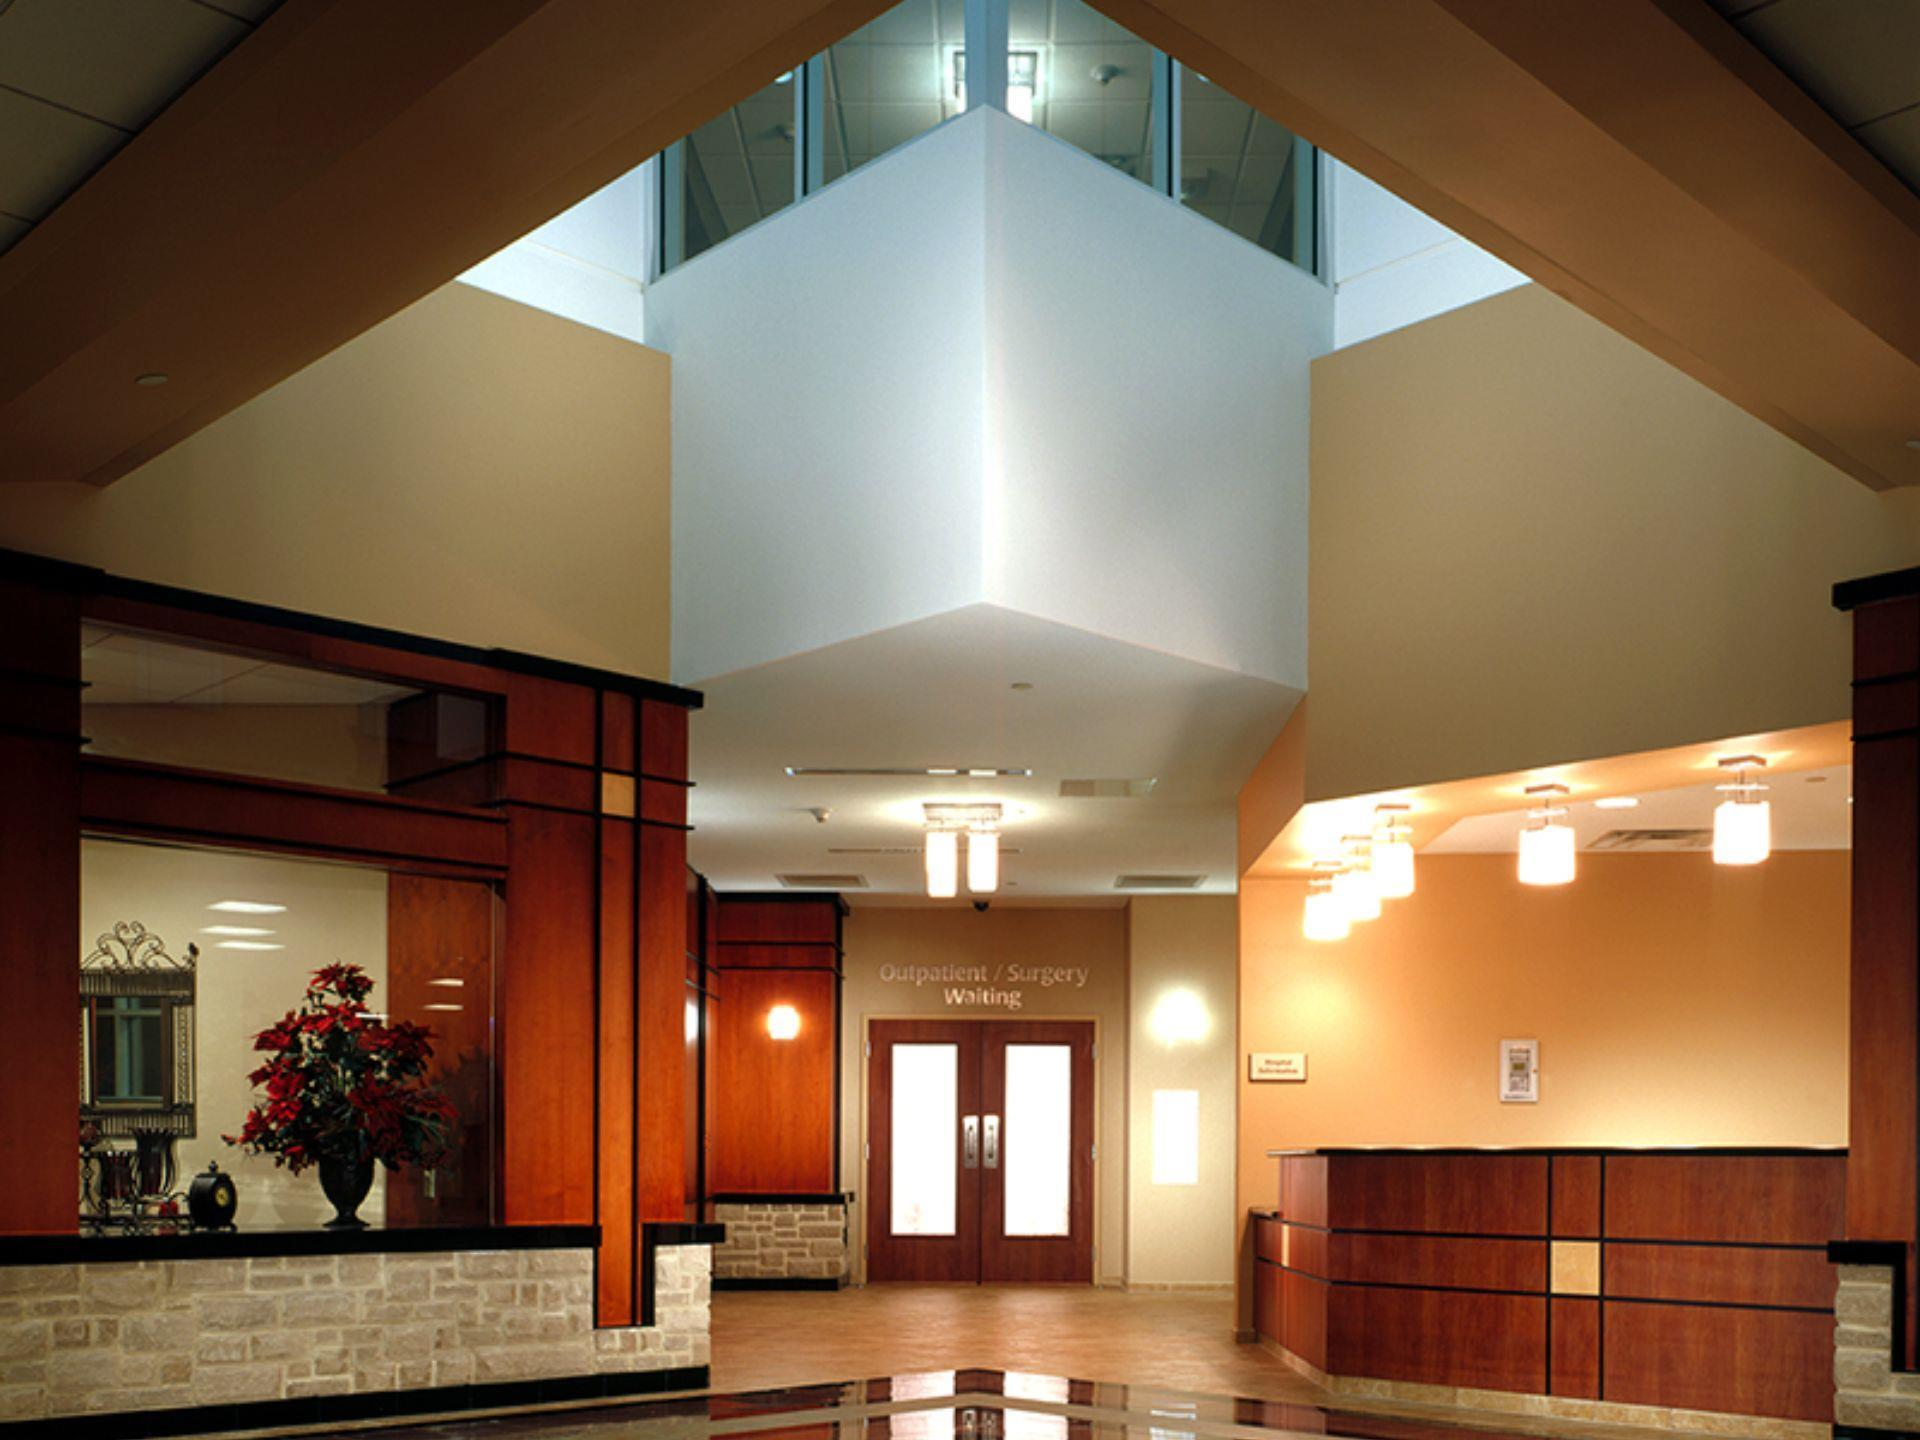 Outpatient/surgery waiting room with open lobby